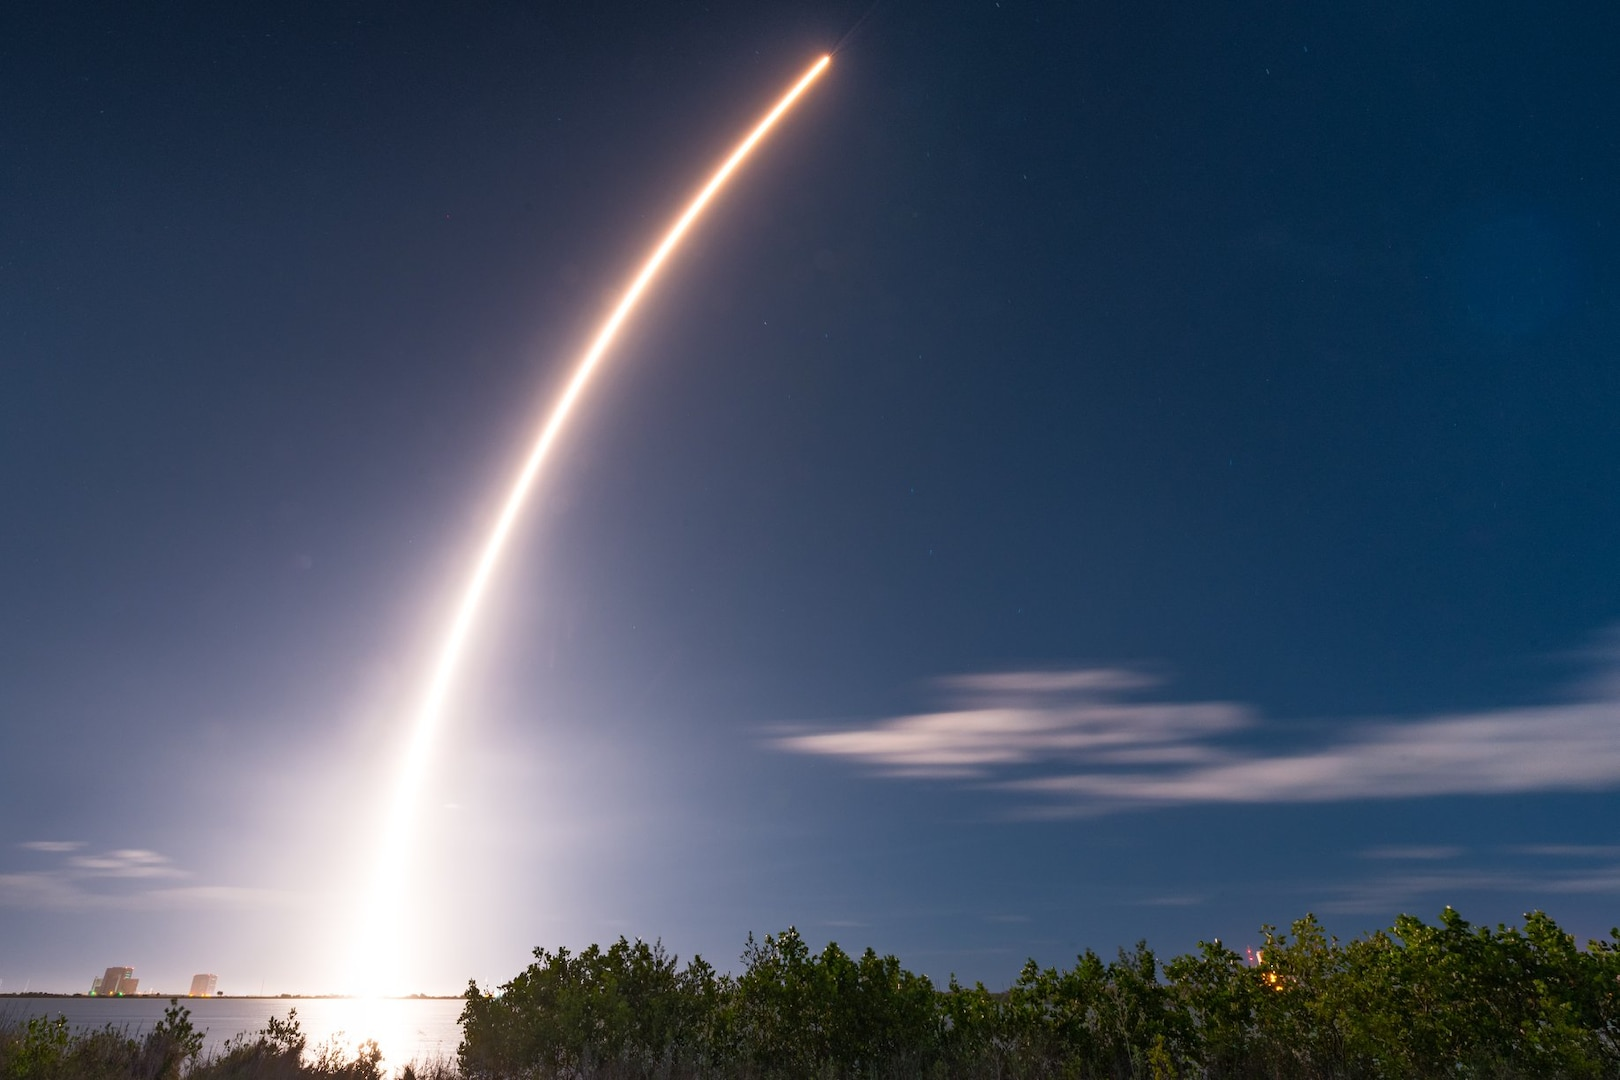 United Launch Alliance's Atlas V rocket carries the Solar Orbiter into space as it launches on Feb. 9, 2020, at Cape Canaveral Air Force Station, Fla. The Solar Orbiter is a Sun-observing satellite which is intended to perform measurements of the inner heliosphere and perform close observations of the polar regions of the Sun. (U.S. Air Force photo by Joshua Conti)